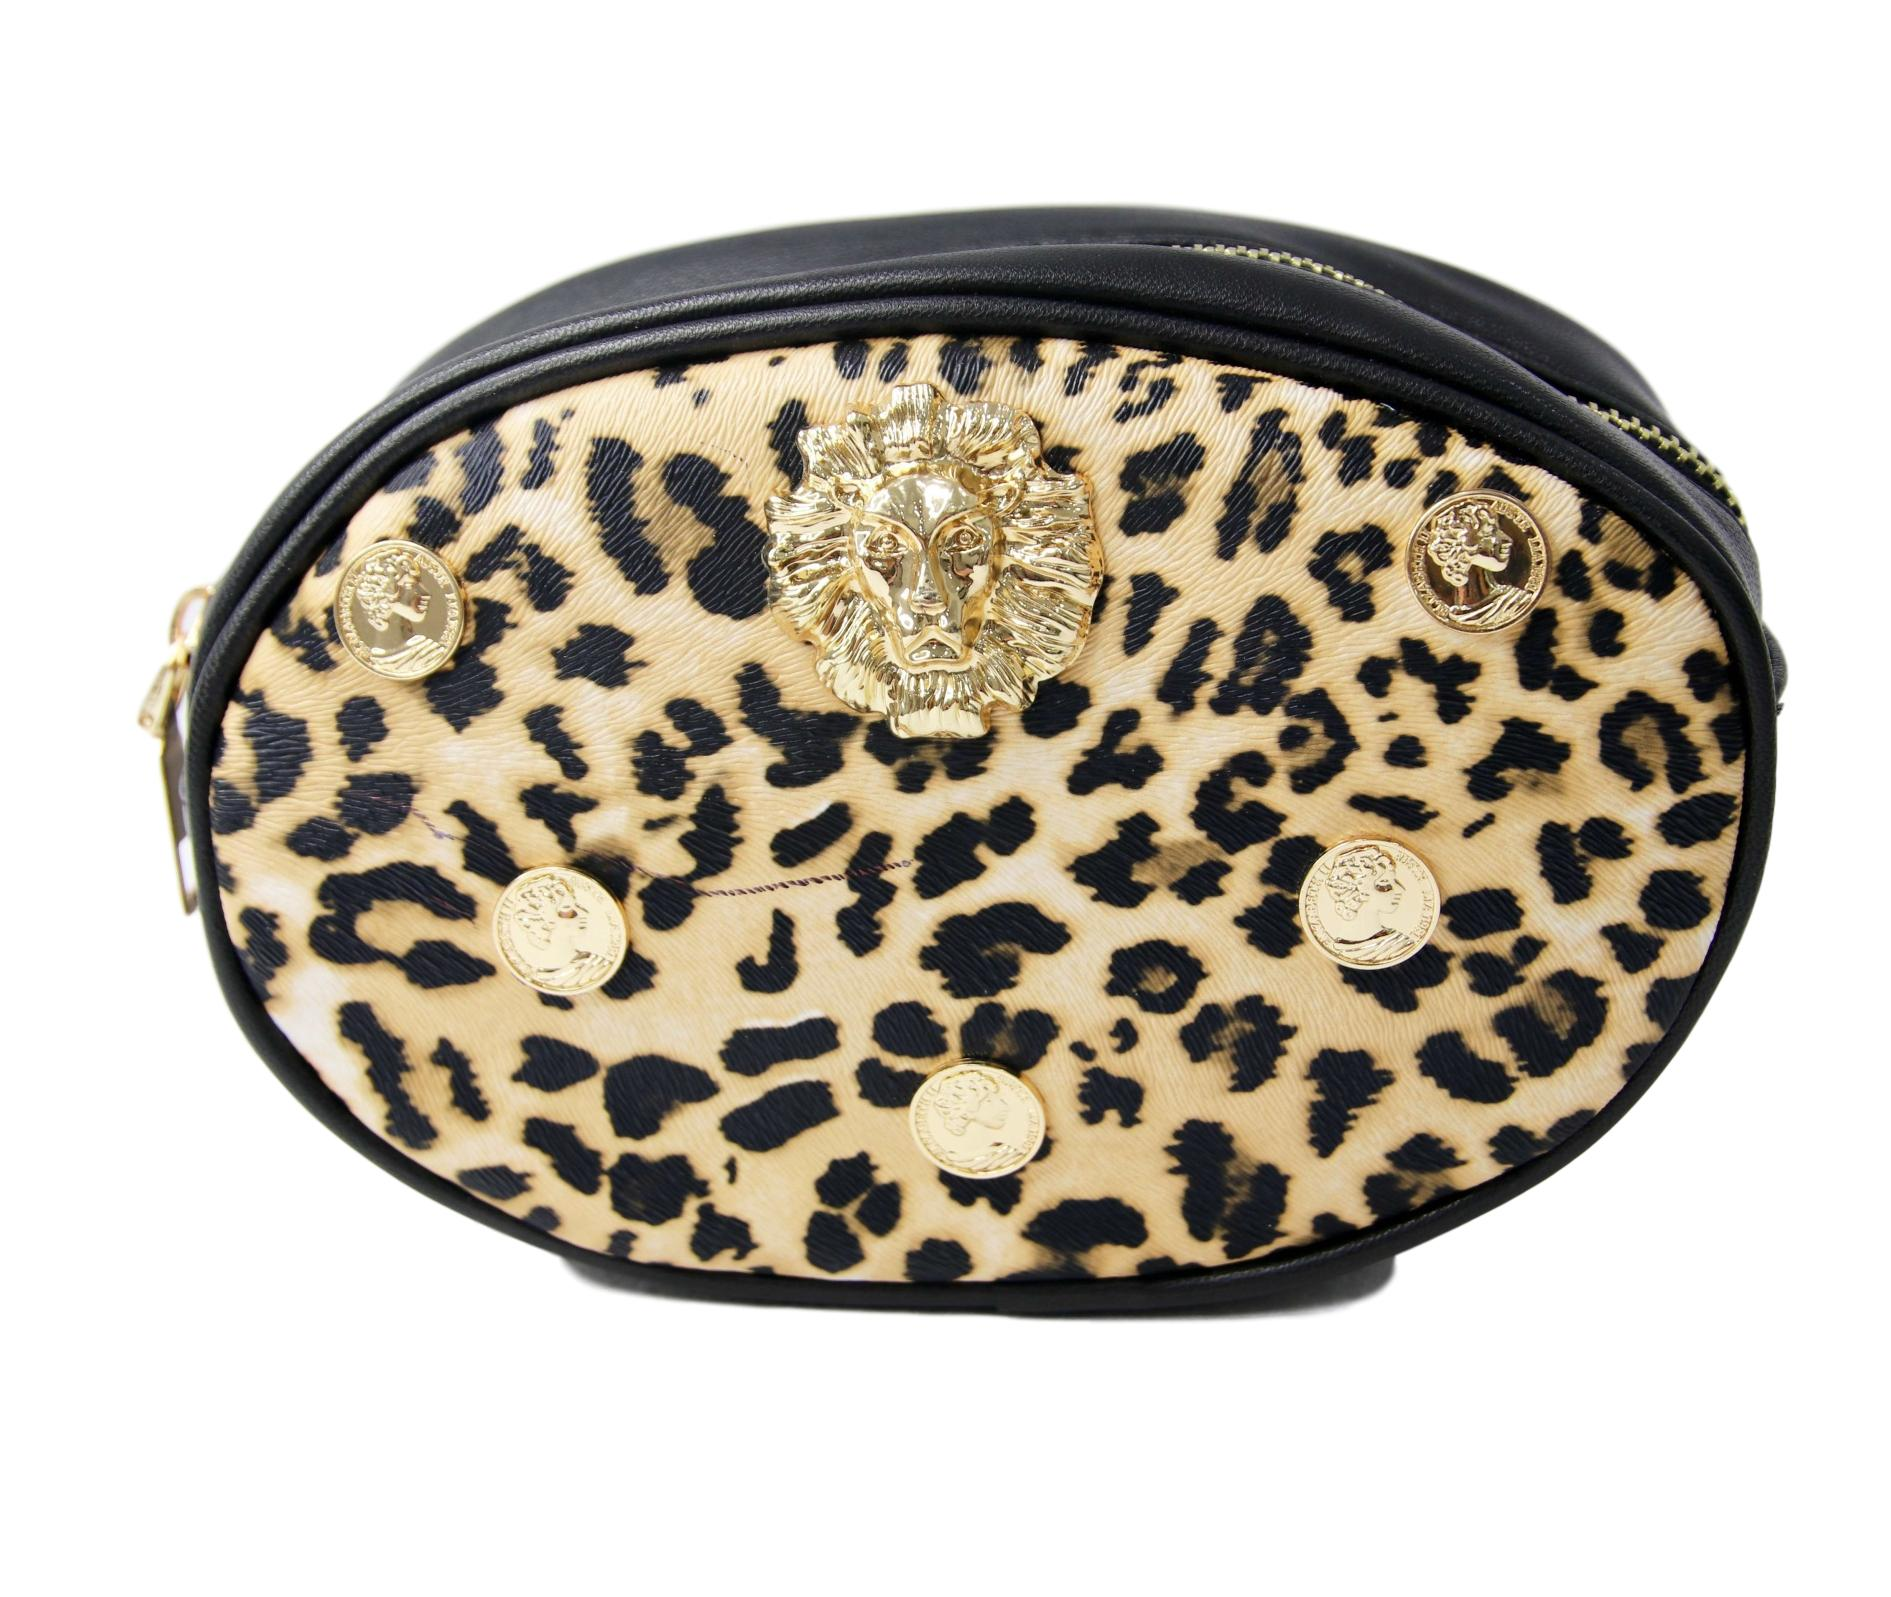 Leopard Print Belt Bag with Metal Lion and Coins Embellishment